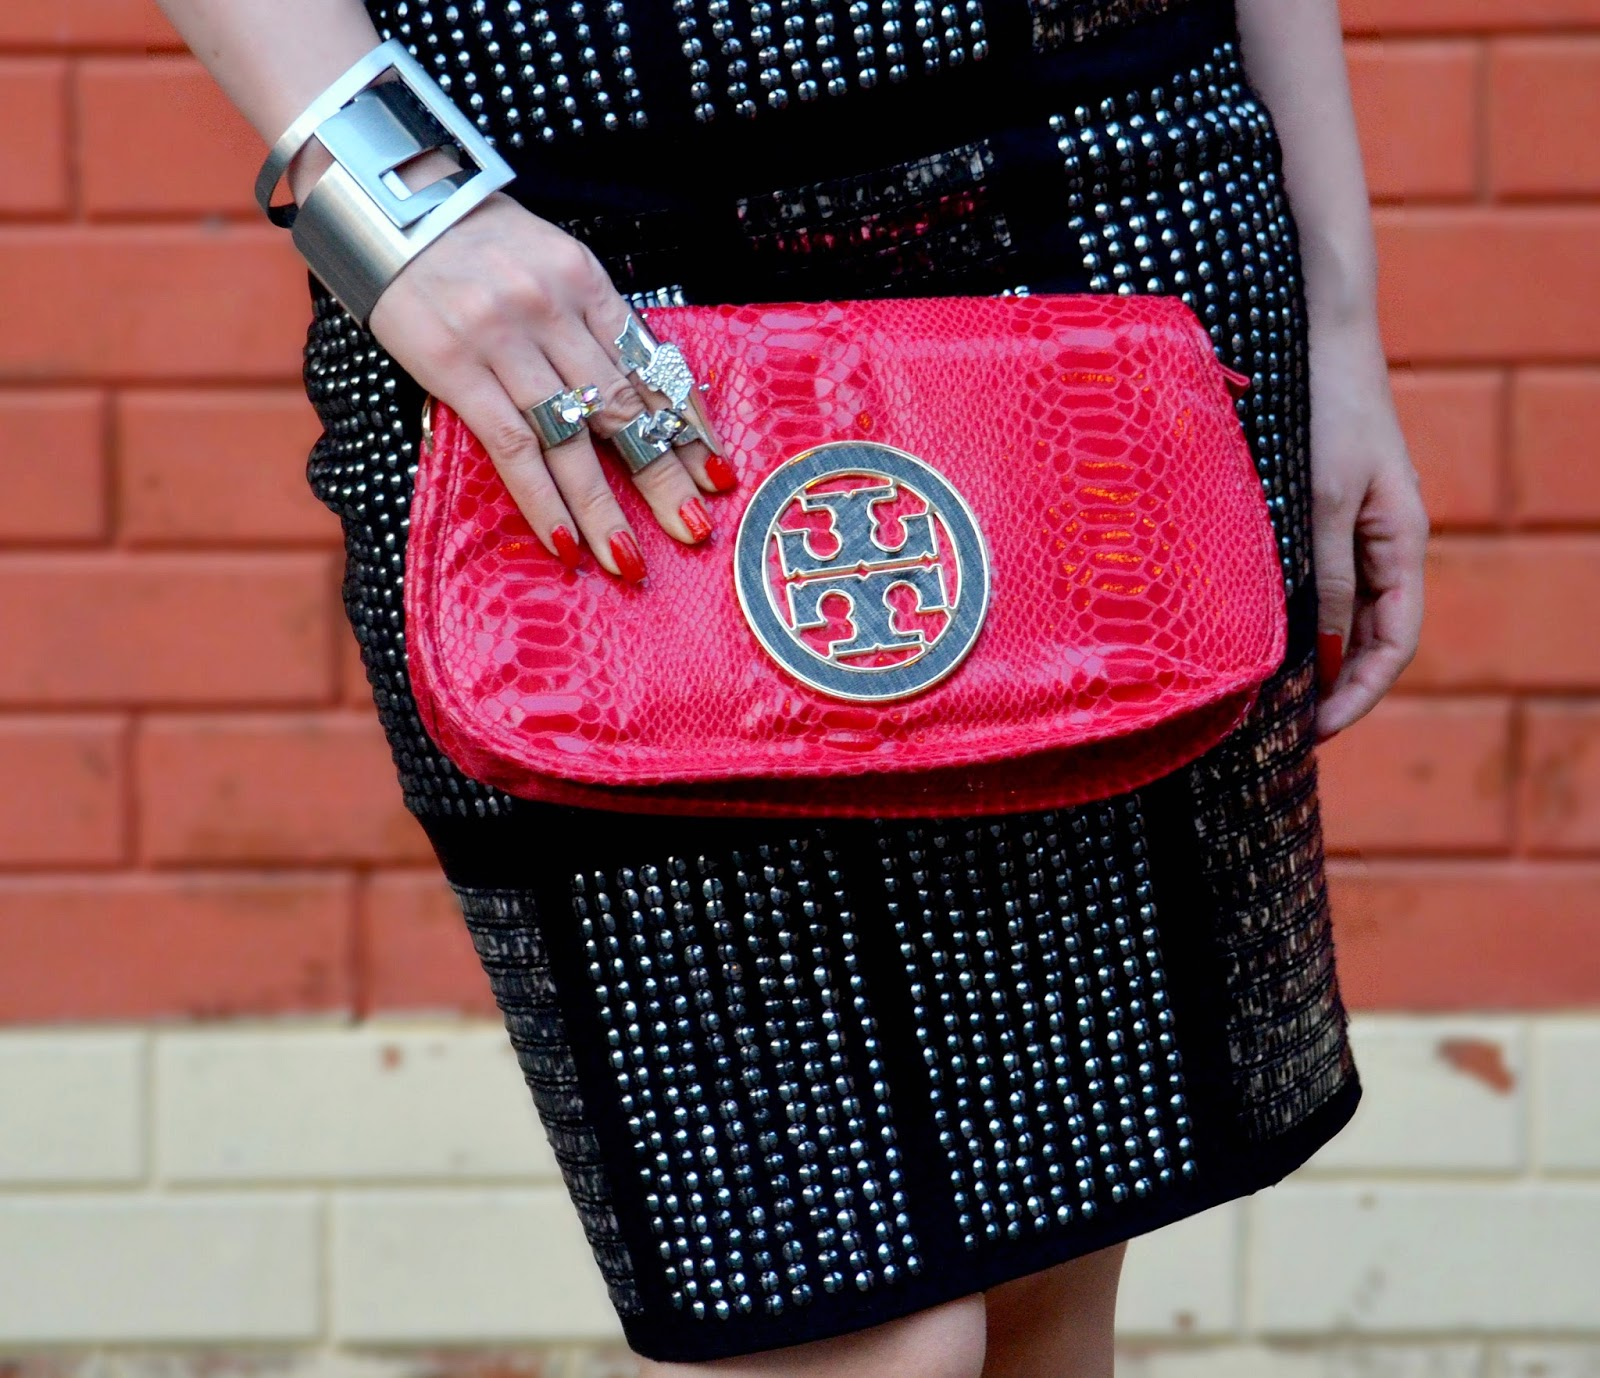 Red Tory Burch Snakeskin Clutch